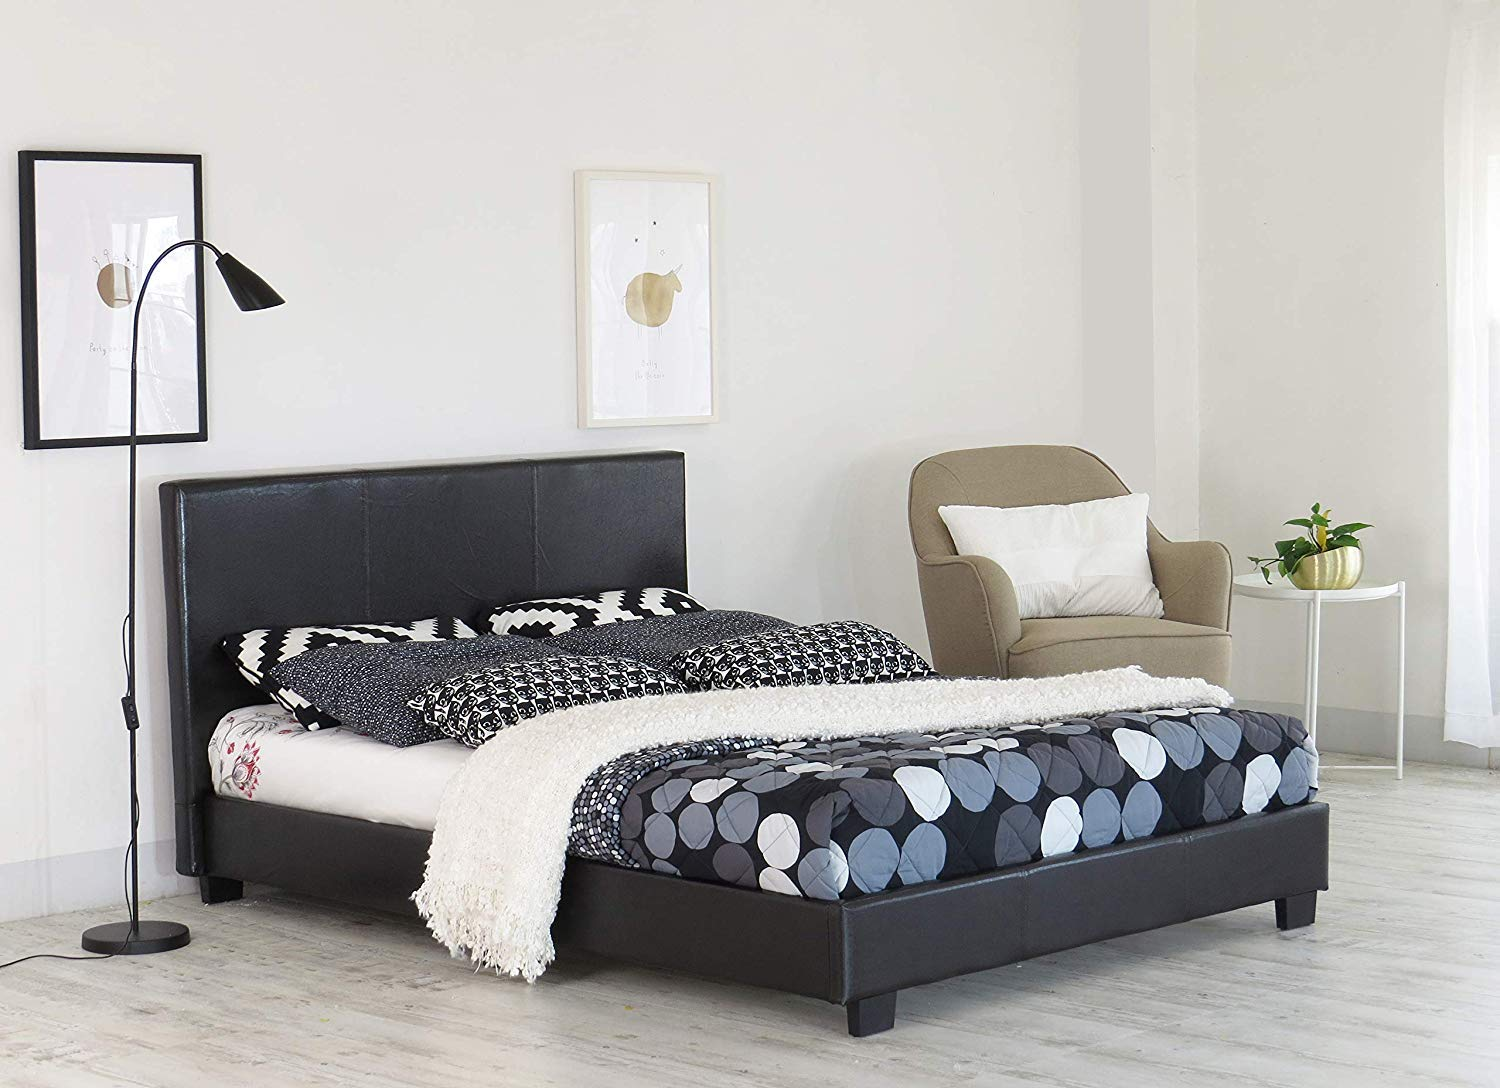 d3f48a97a91 Home Treats Small Double Bed Frame